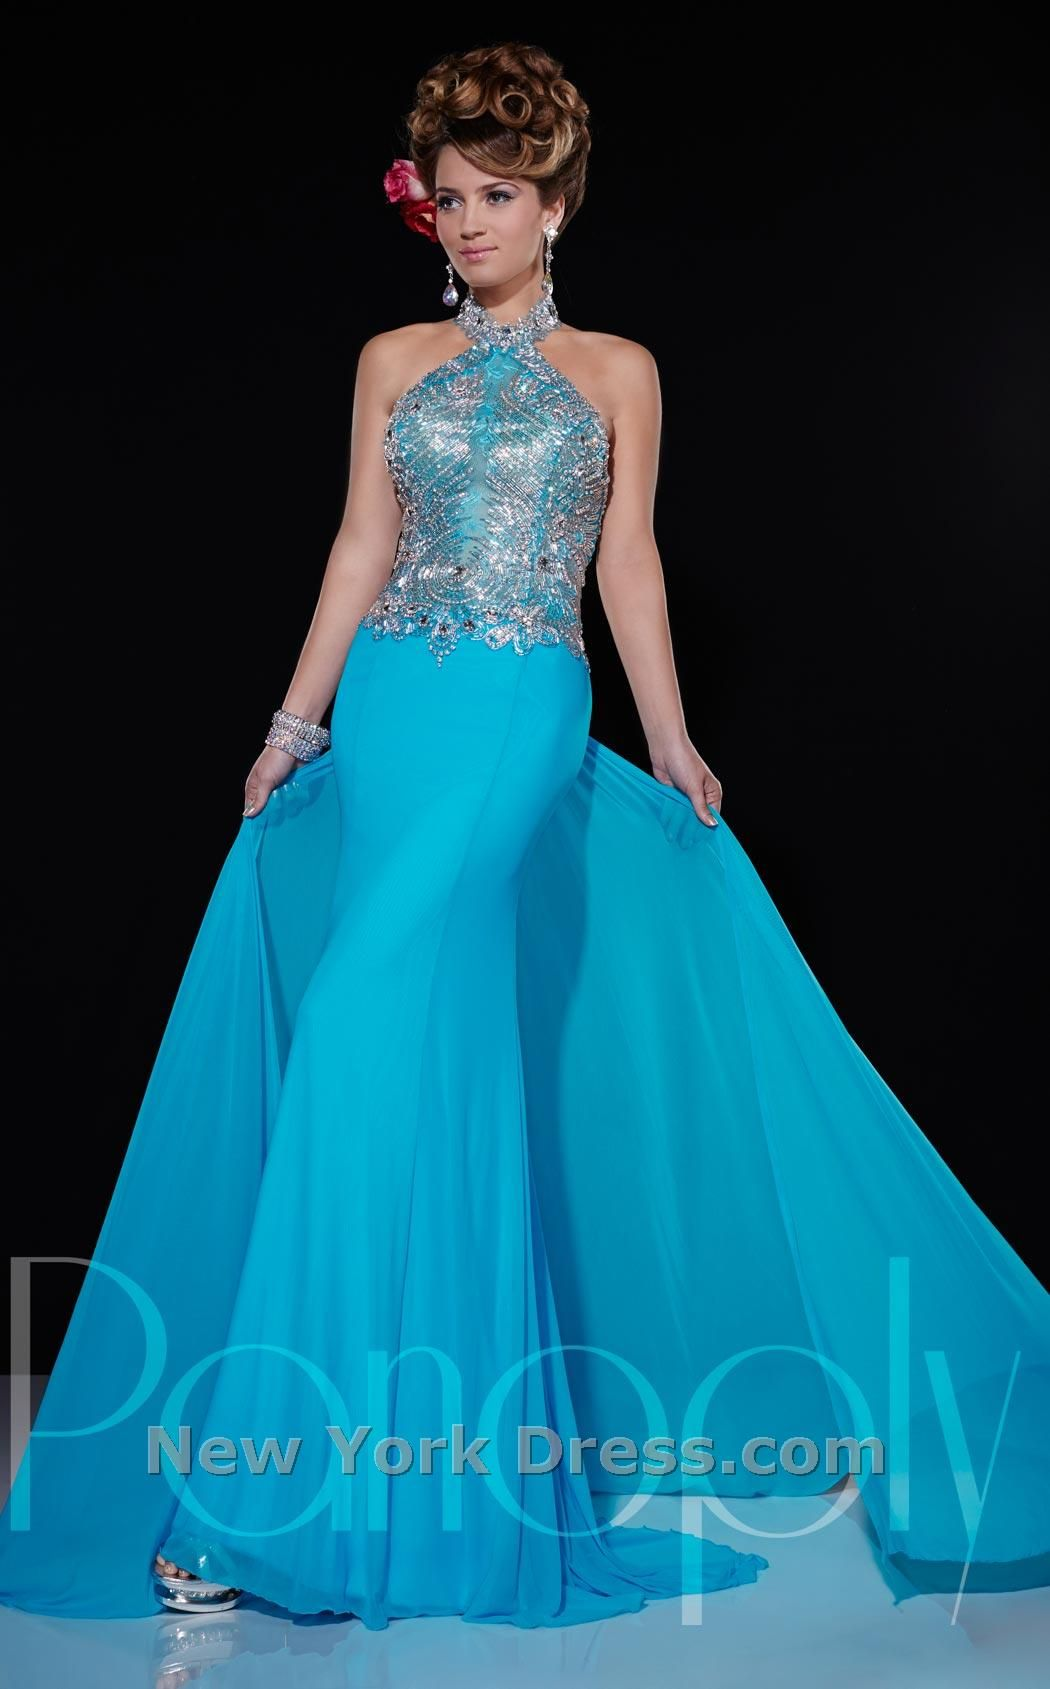 Panoply Dress 44260 | Bodice, Red carpet and Neckline